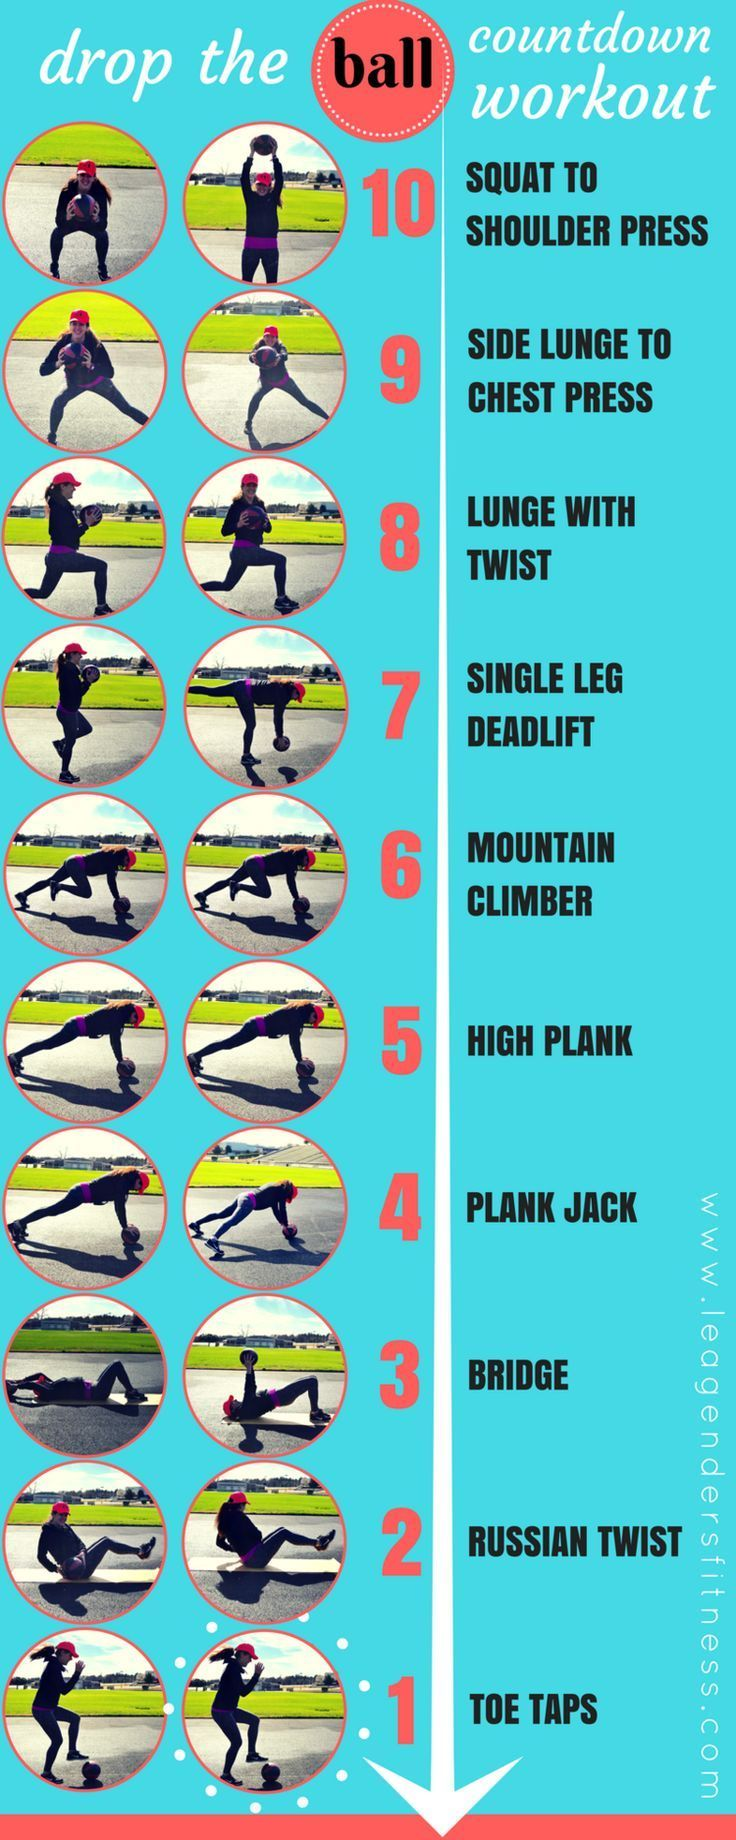 DROP THE (MEDICINE) BALL COUNTDOWN WORKOUT #Medballworkout ...